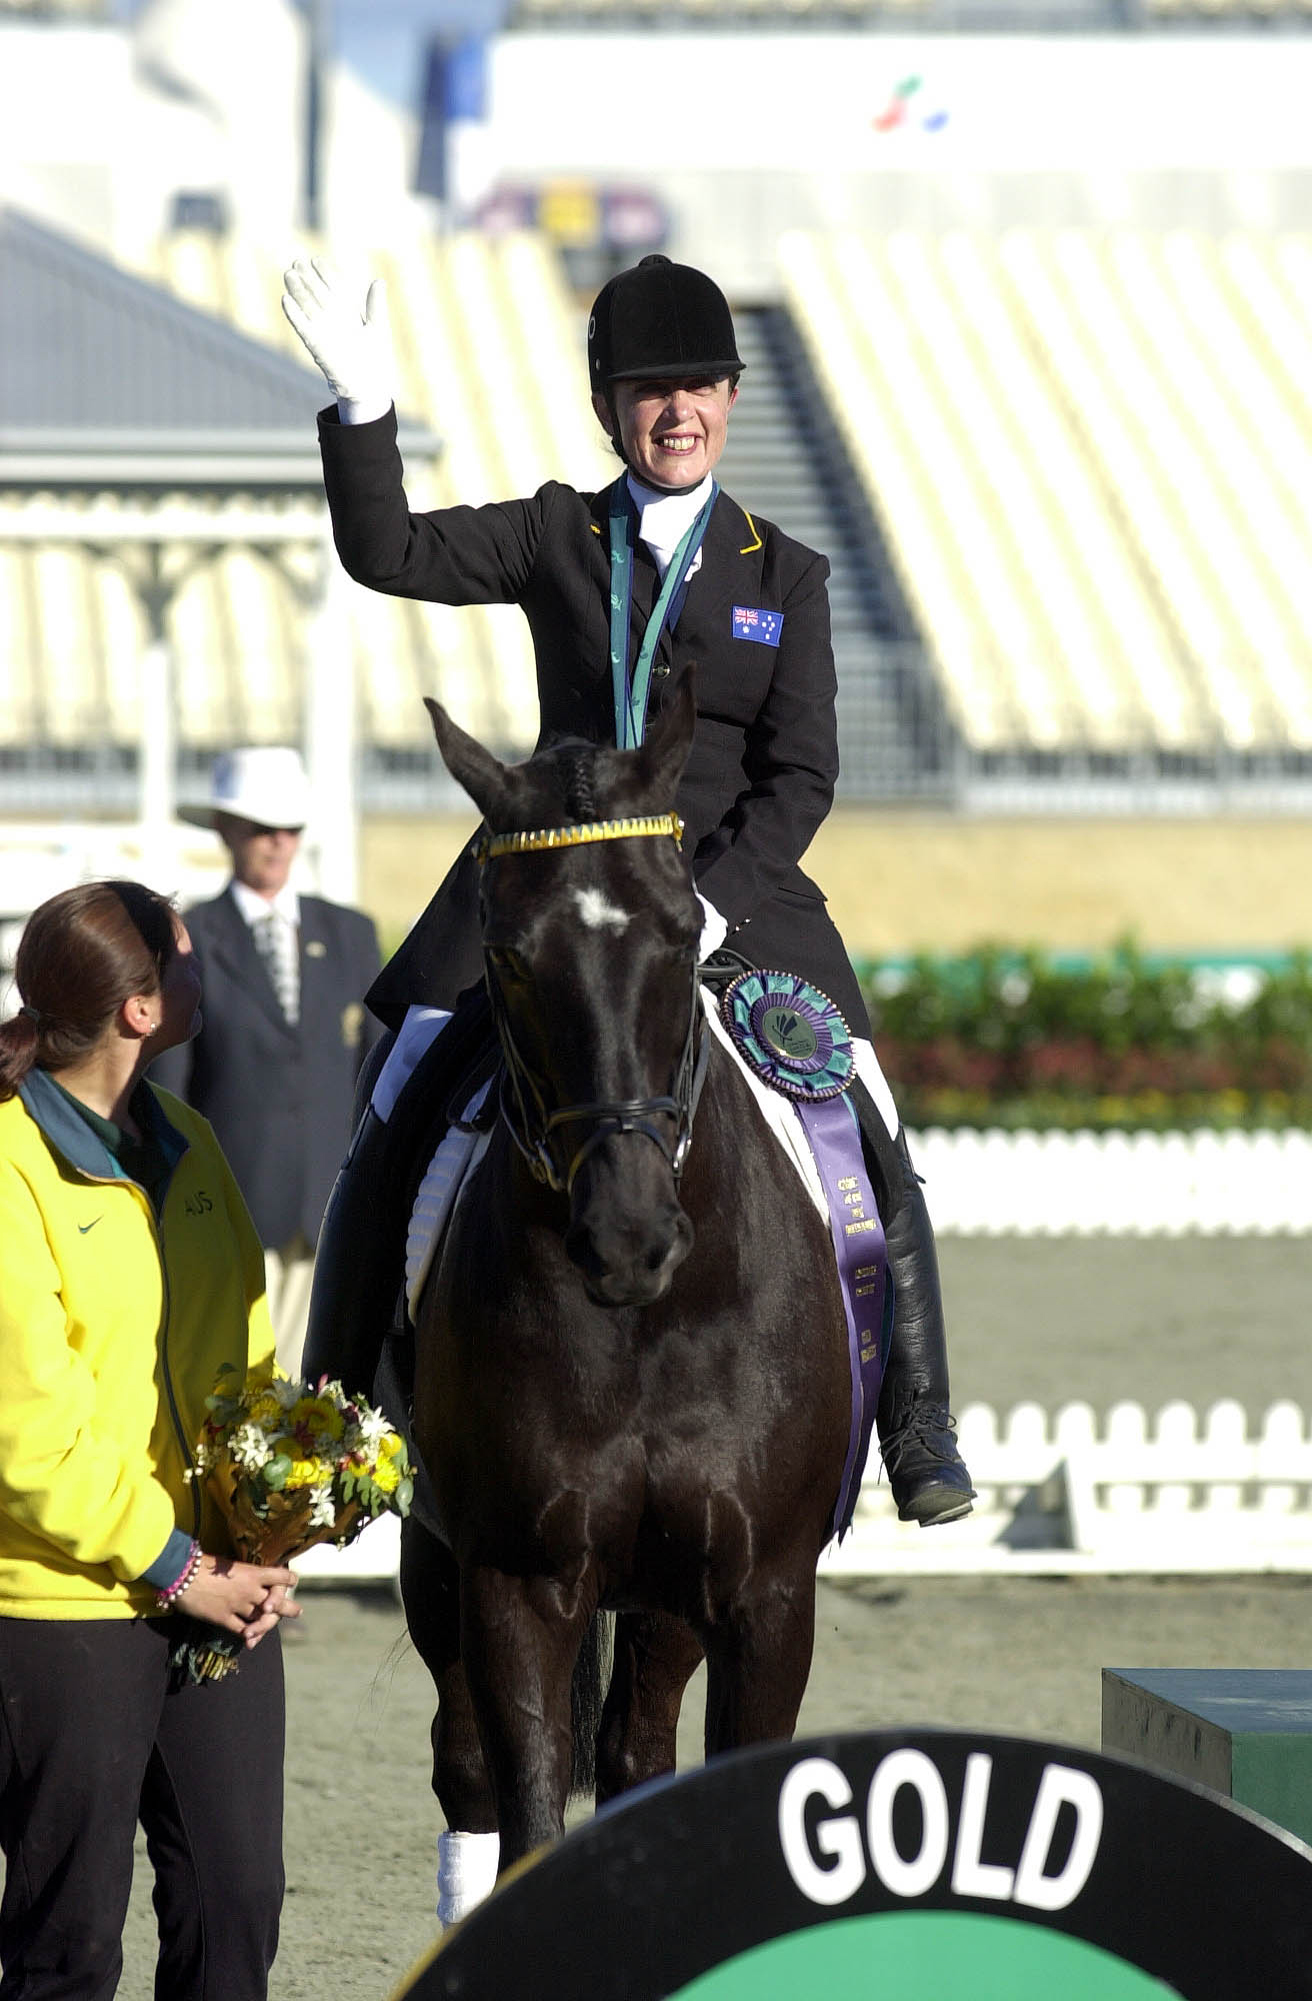 Equestrian At The 2000 Summer Paralympics Wikipedia